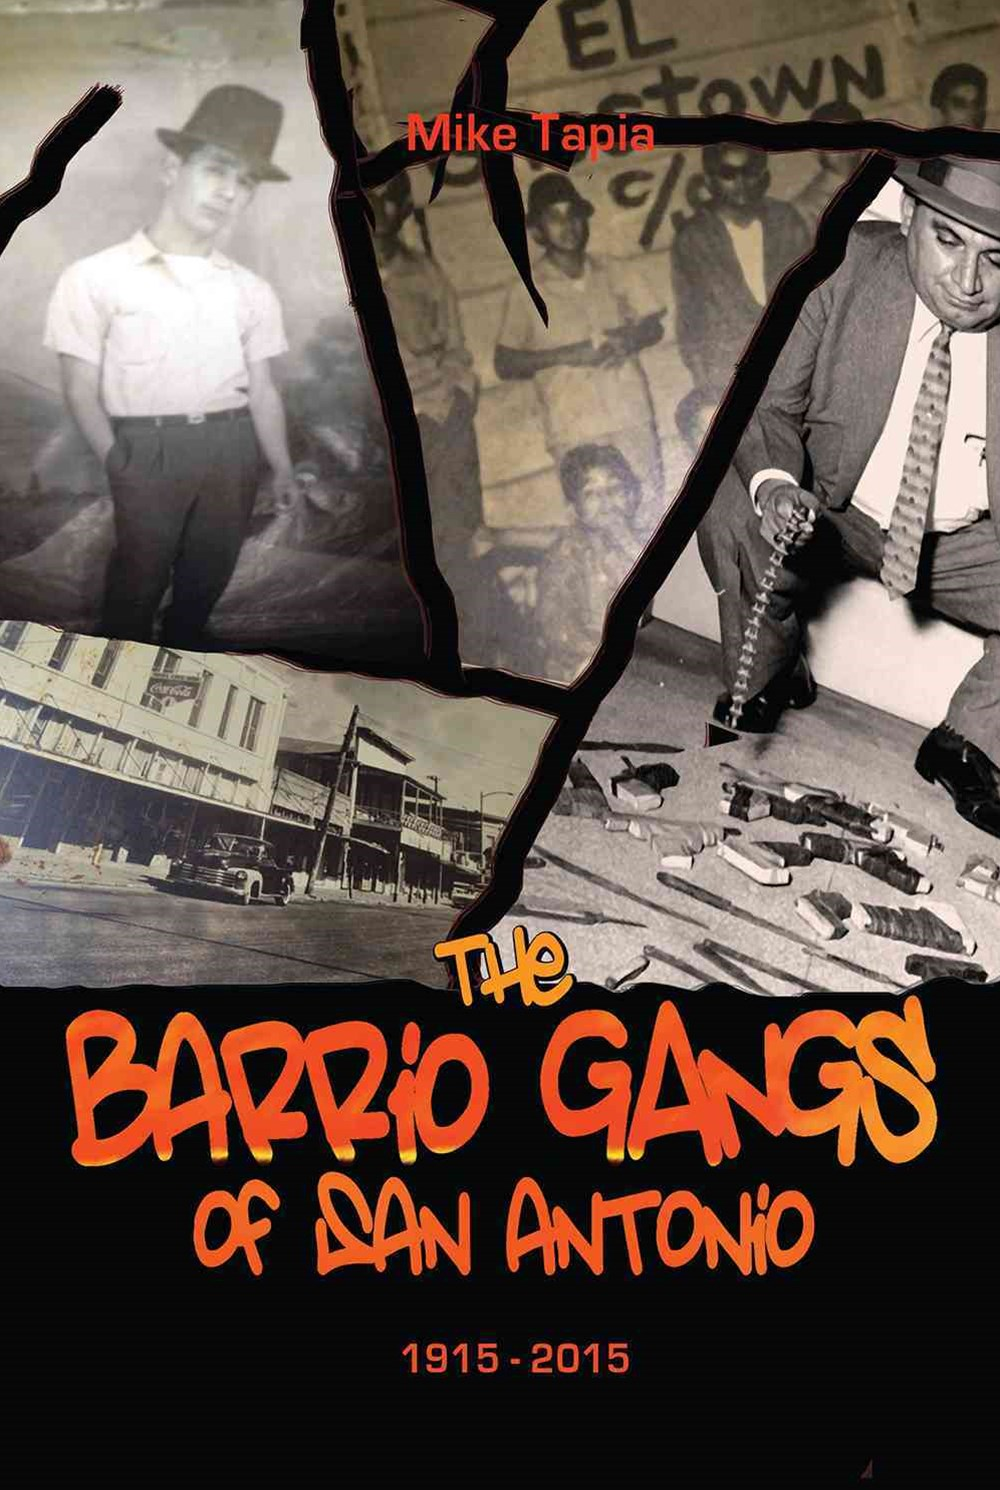 The Barrio Gangs of San Antonio, 1915-2015